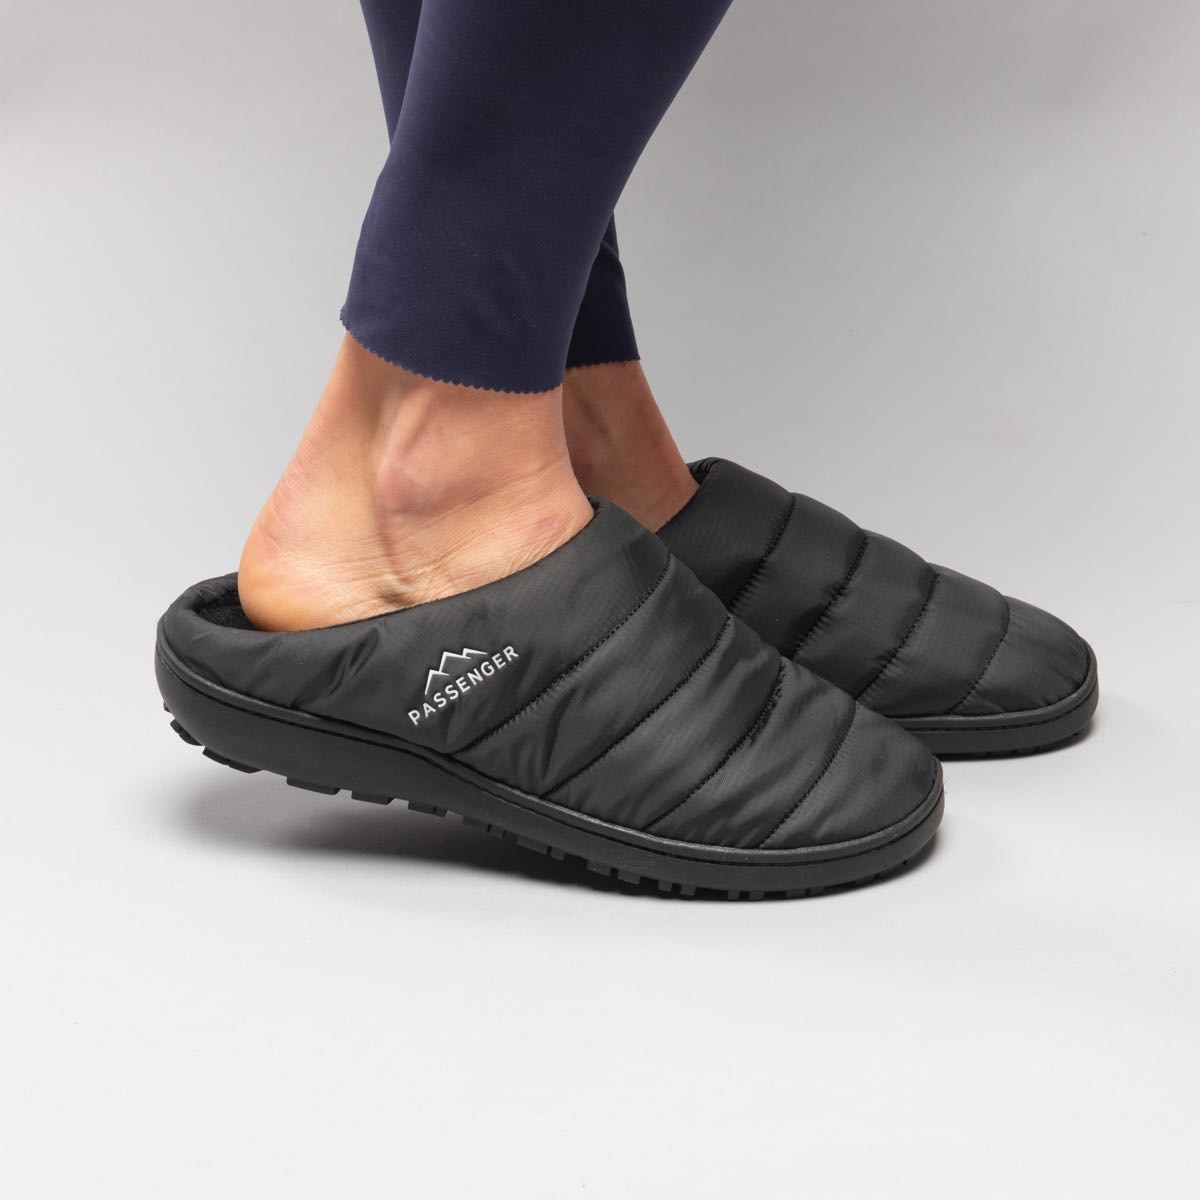 Sole Slipper - Solid Black image 2